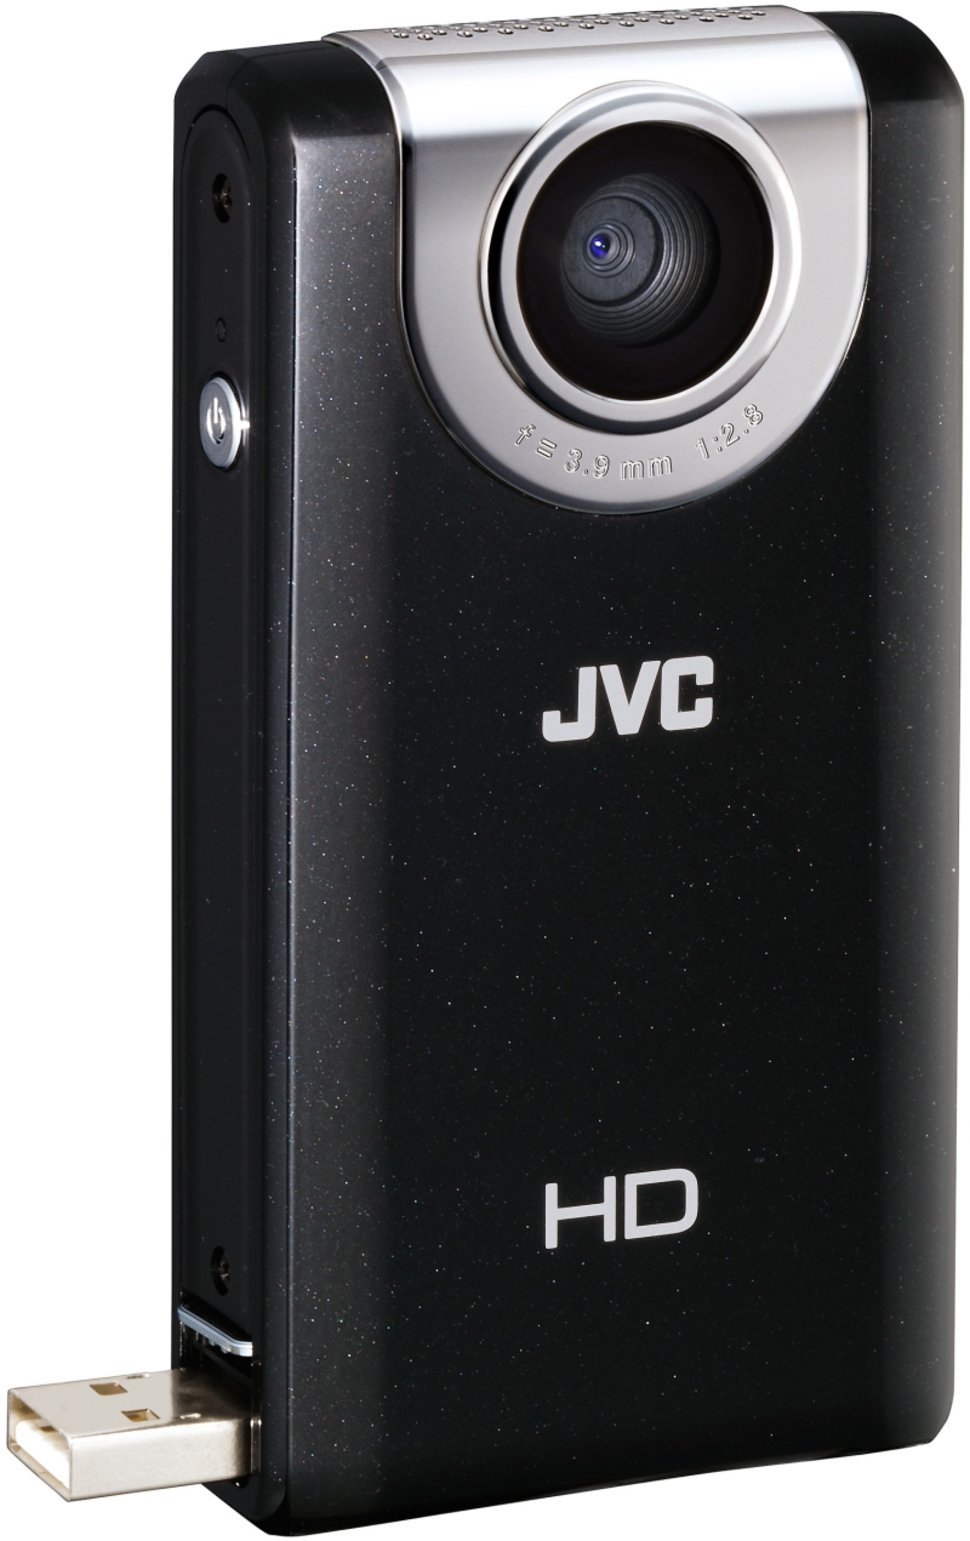 jvc picsio gc fm2 rh pocket lint com JVC Waterproof Camera JVC Picsio FM1